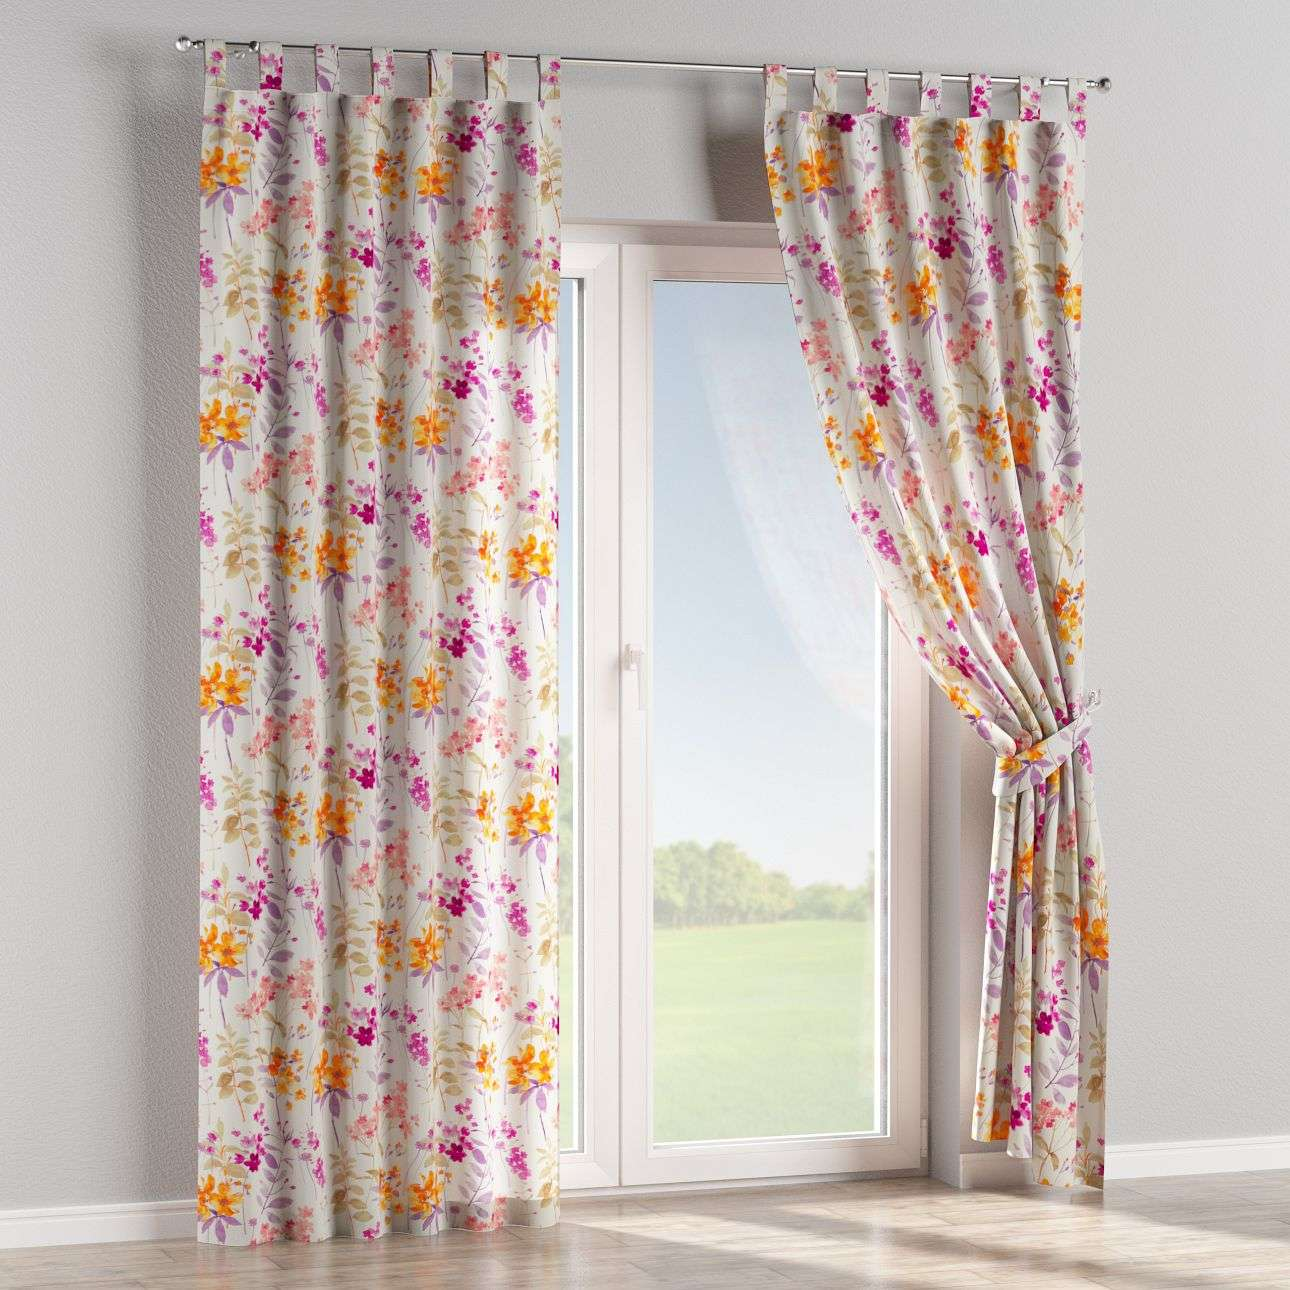 Tab top curtains 130 x 260 cm (51 x 102 inch) in collection Monet, fabric: 140-04